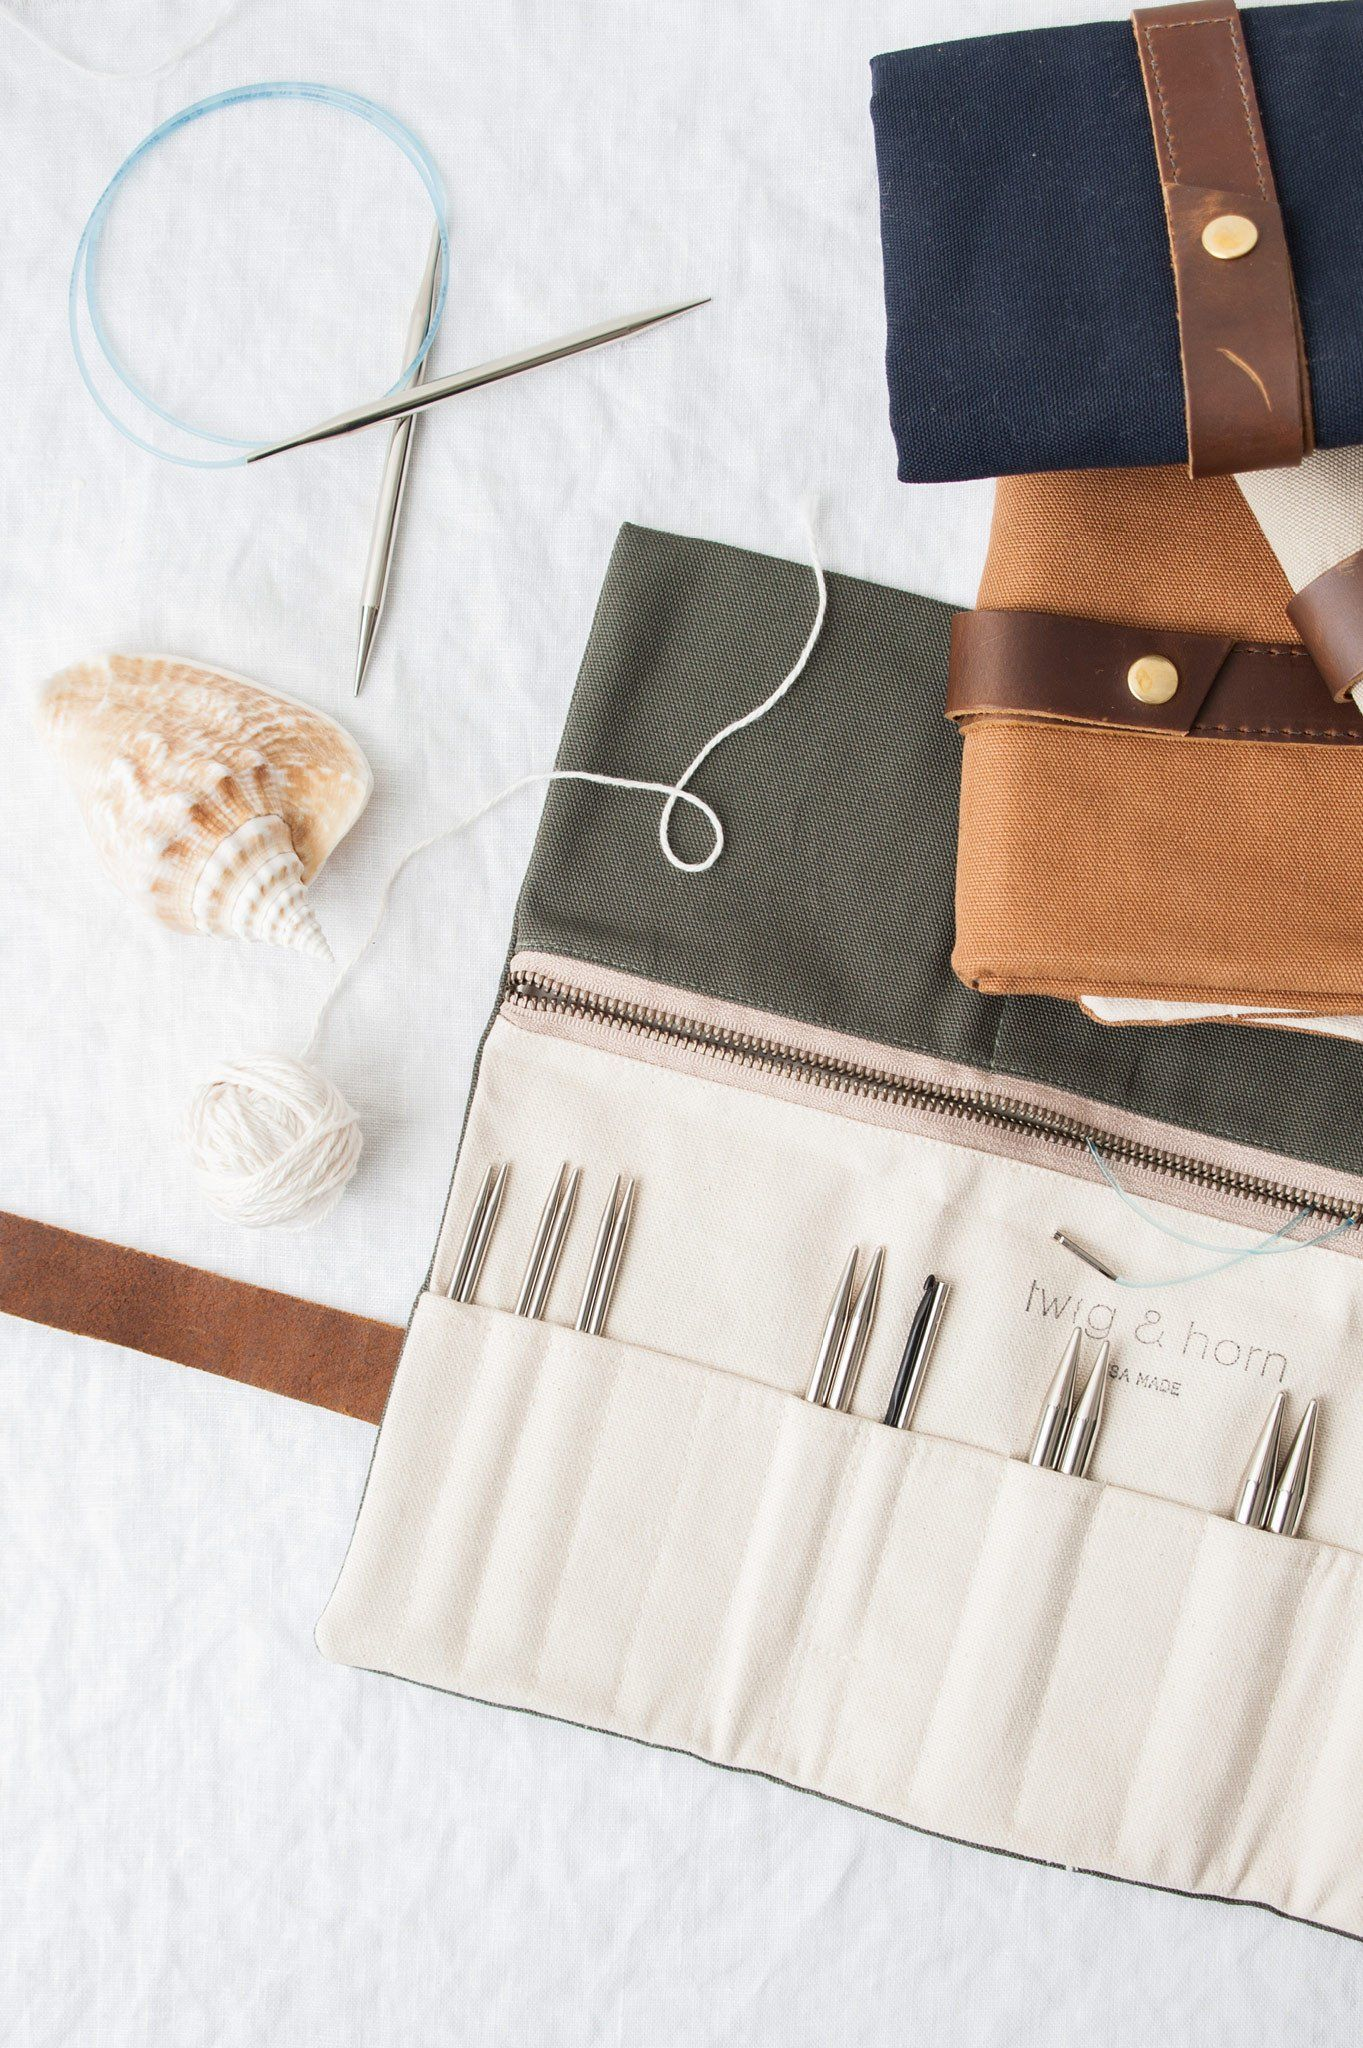 Pin by Julie Pavola on Waxed Canvas | Needle case ...